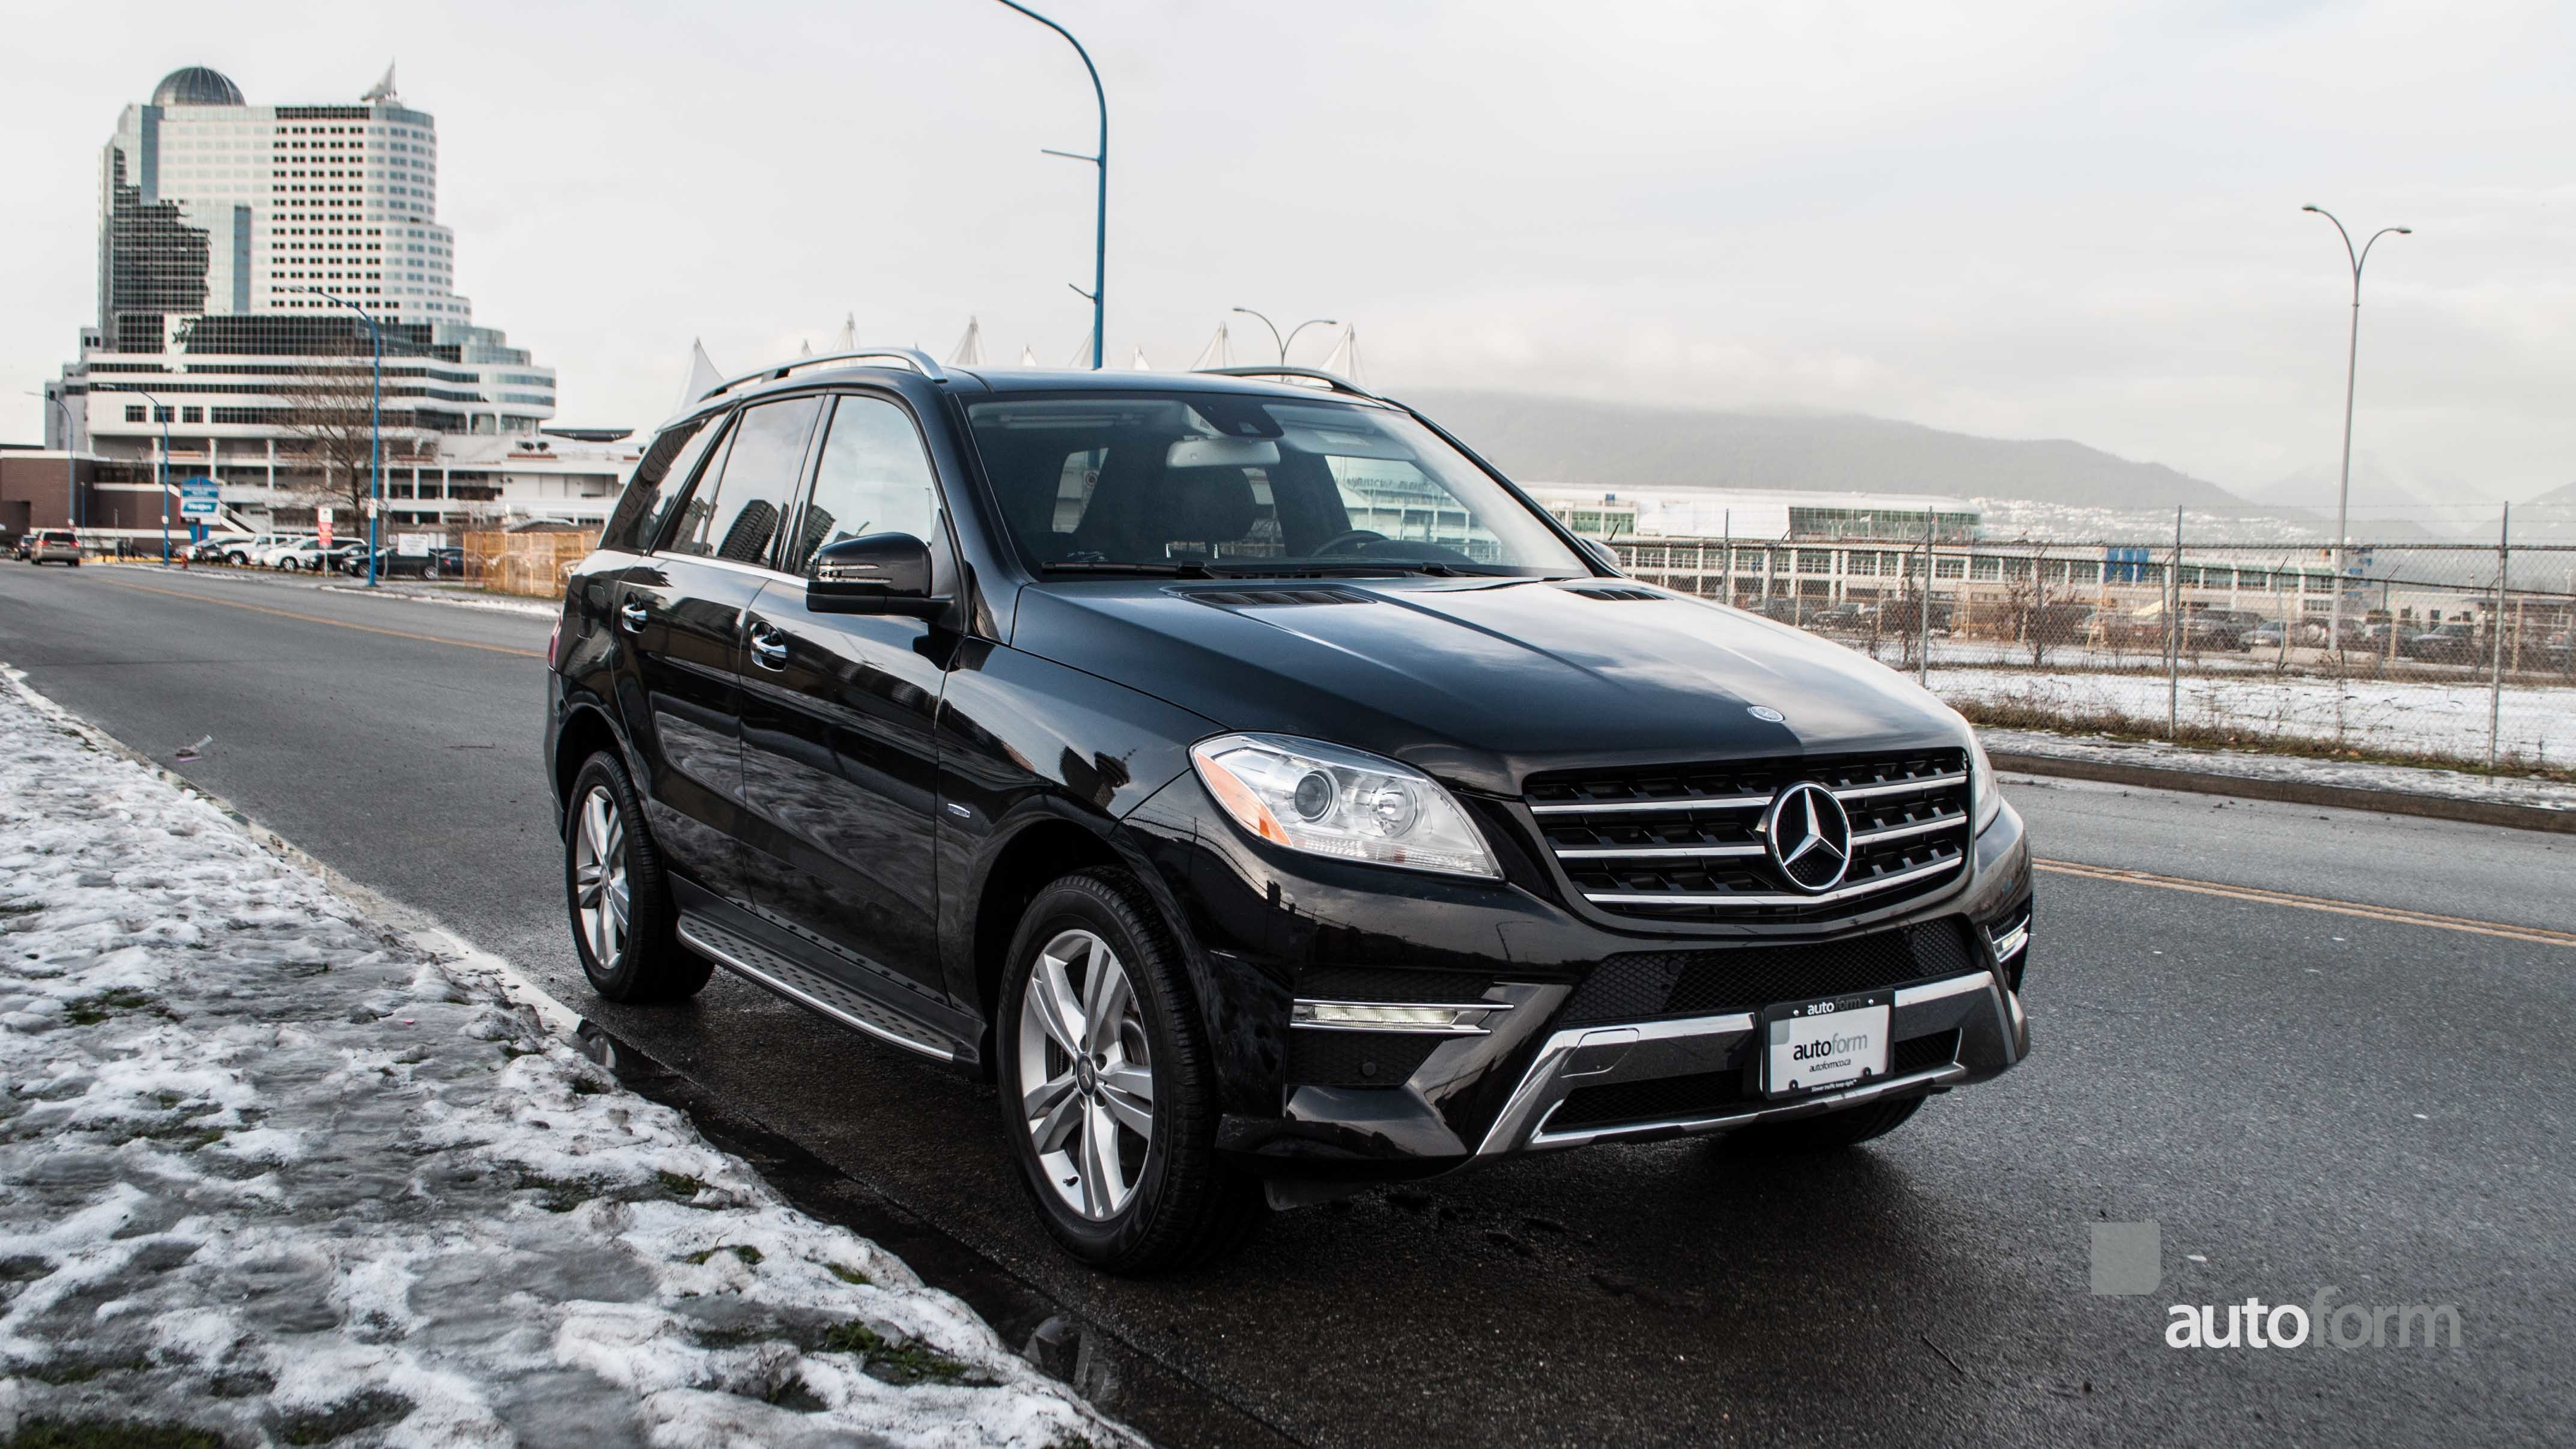 2012 mercedes benz ml350 bluetec 4matic autoform for Mercedes benz ml350 bluetec 4matic